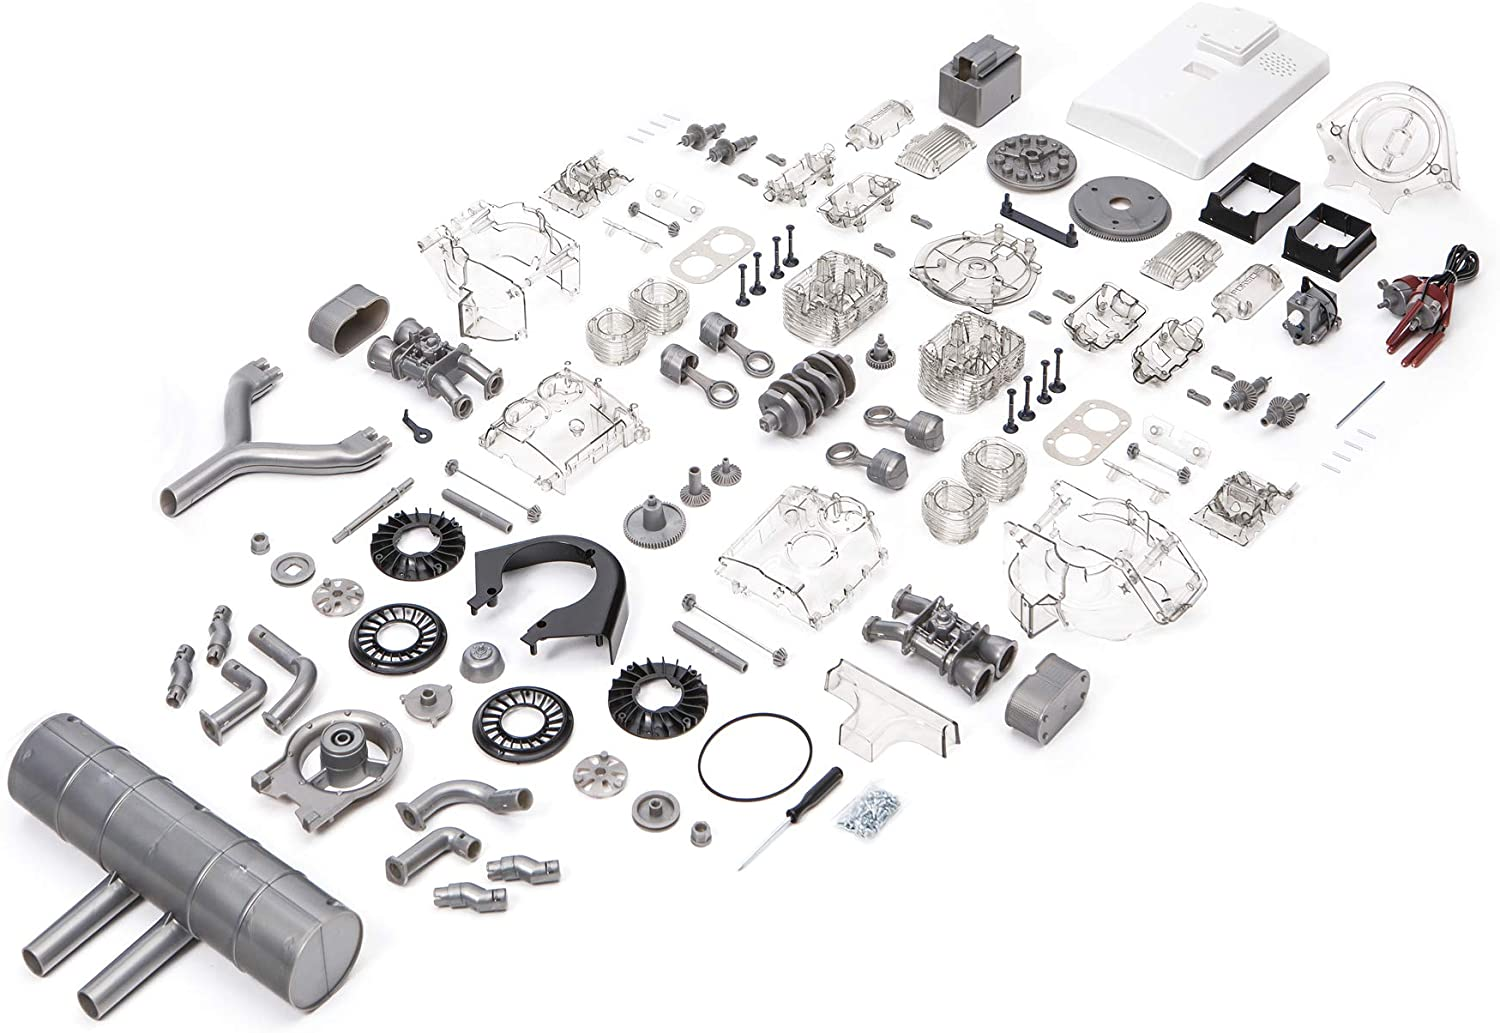 Porsche Carrera 547 1:3 Scale Engine Kit Parts